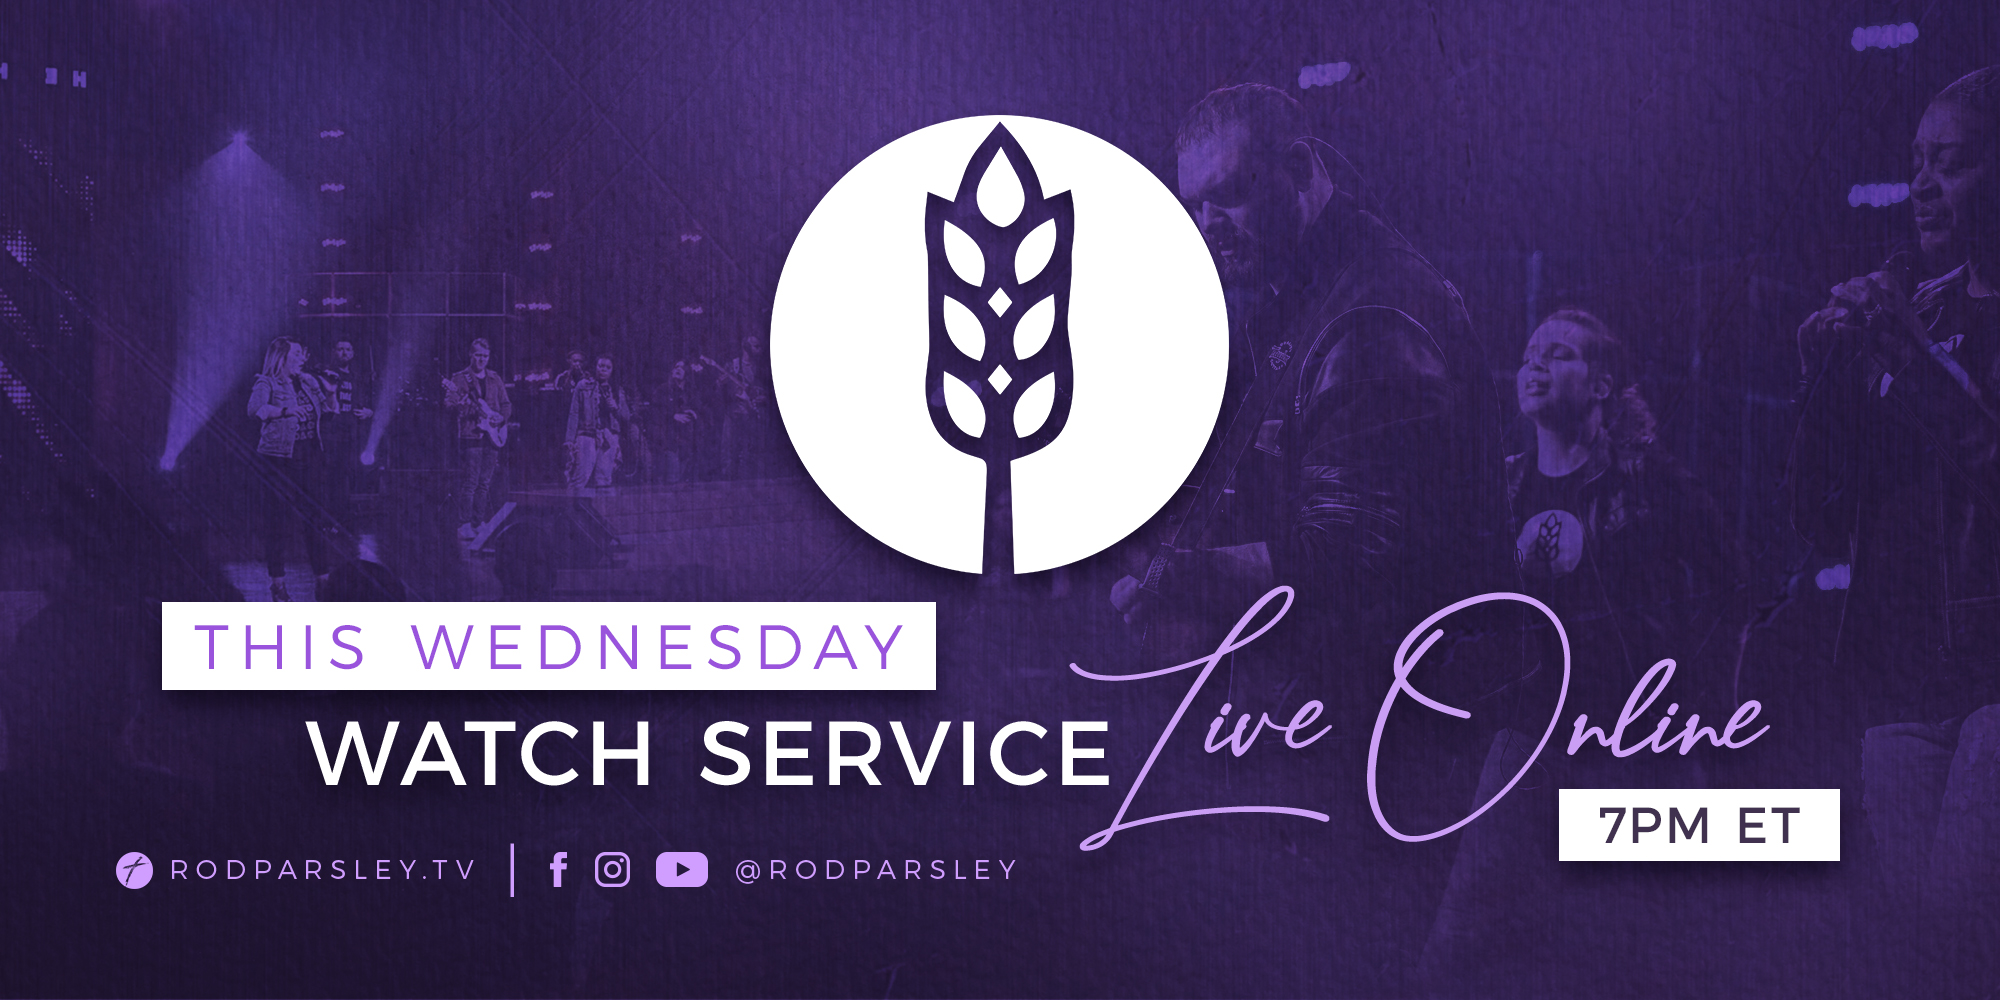 This Wednesday Watch Service Live Online 7PM ET